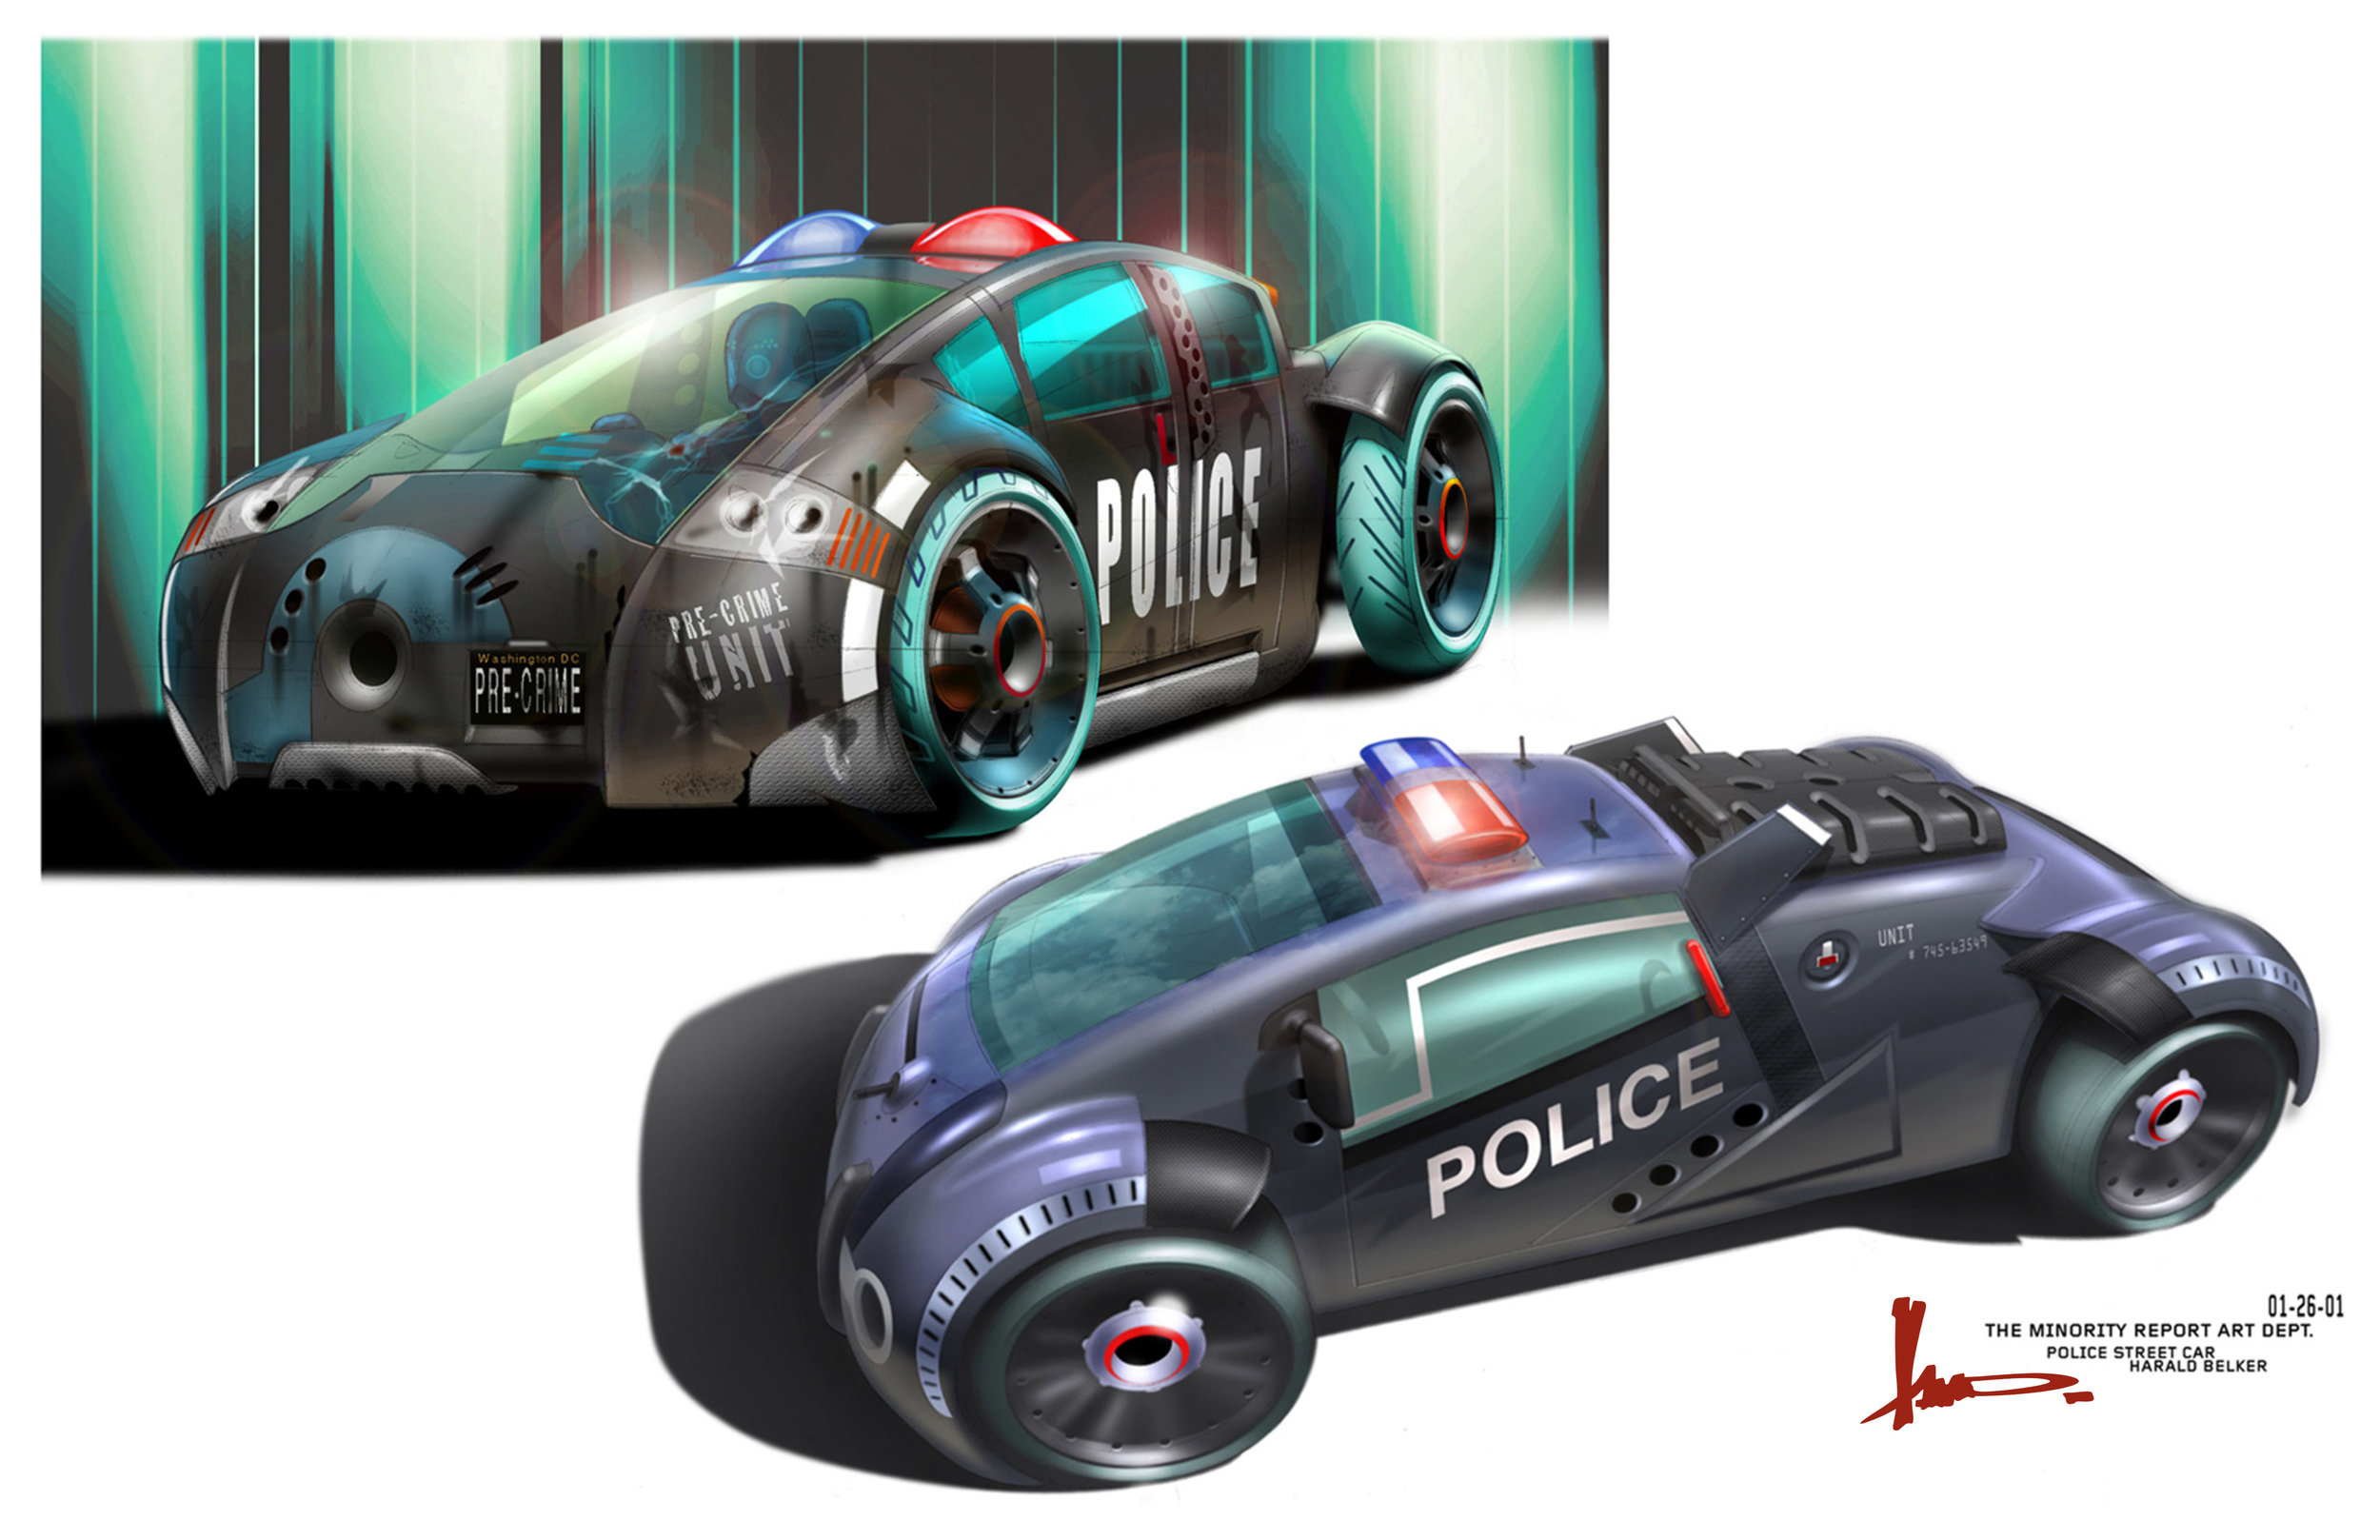 MR_Policecar_inspired-lexus.jpg